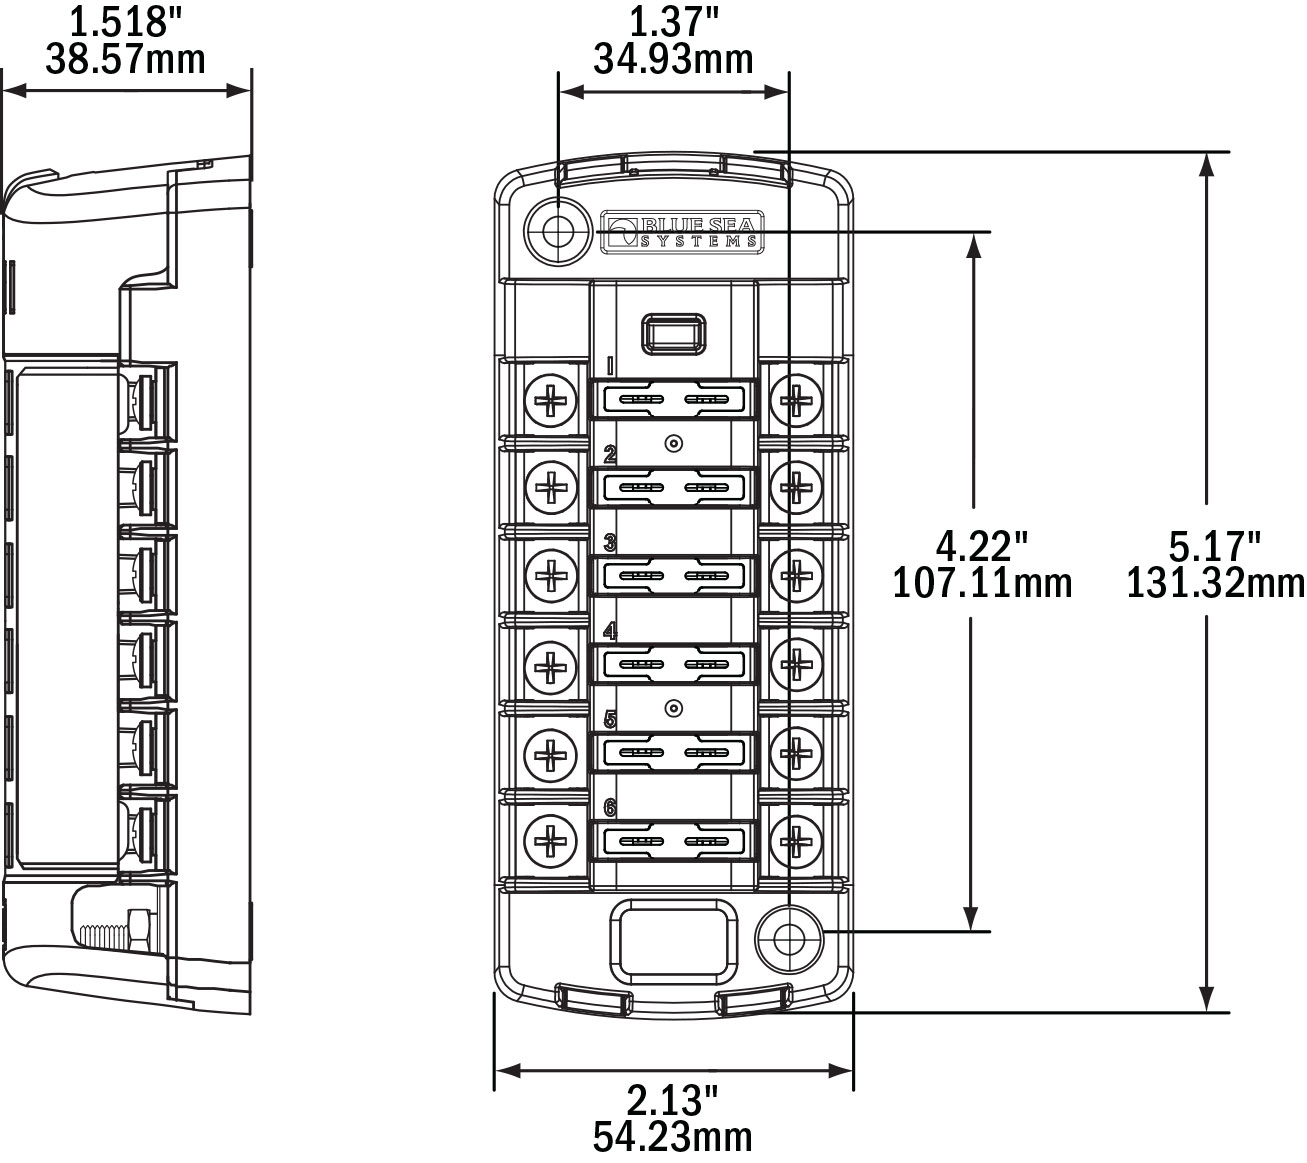 78156 Dimensions blue sea systems 5035 st blade fuse block waytek wire marine fuse block wiring diagram at n-0.co